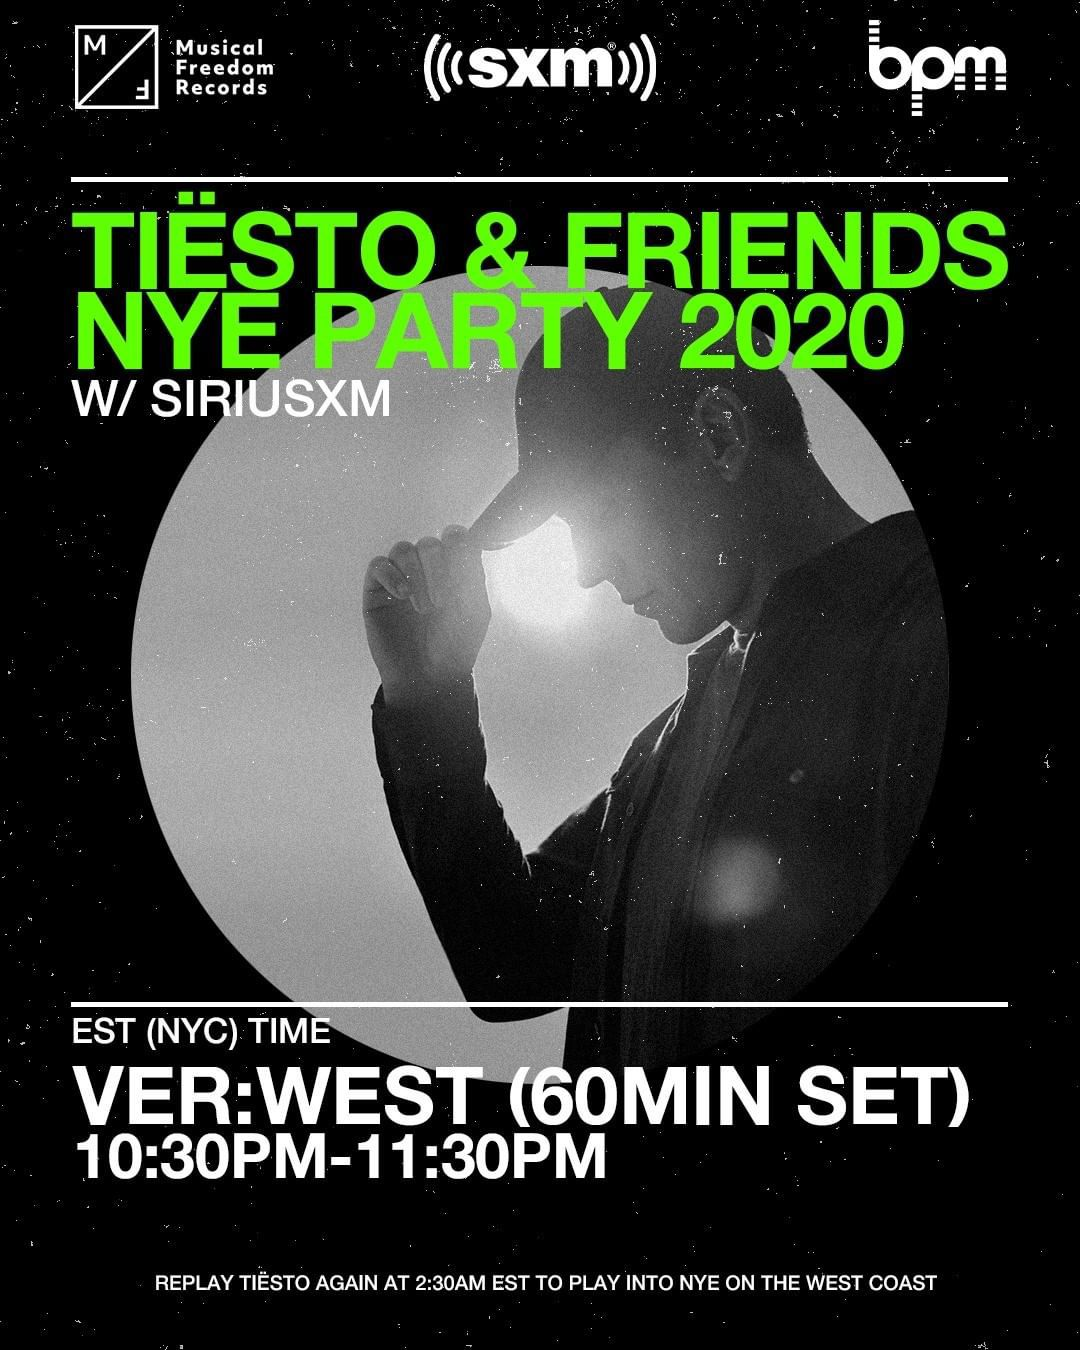 Tiësto and friends, New Year 2020 on Sirius Xm